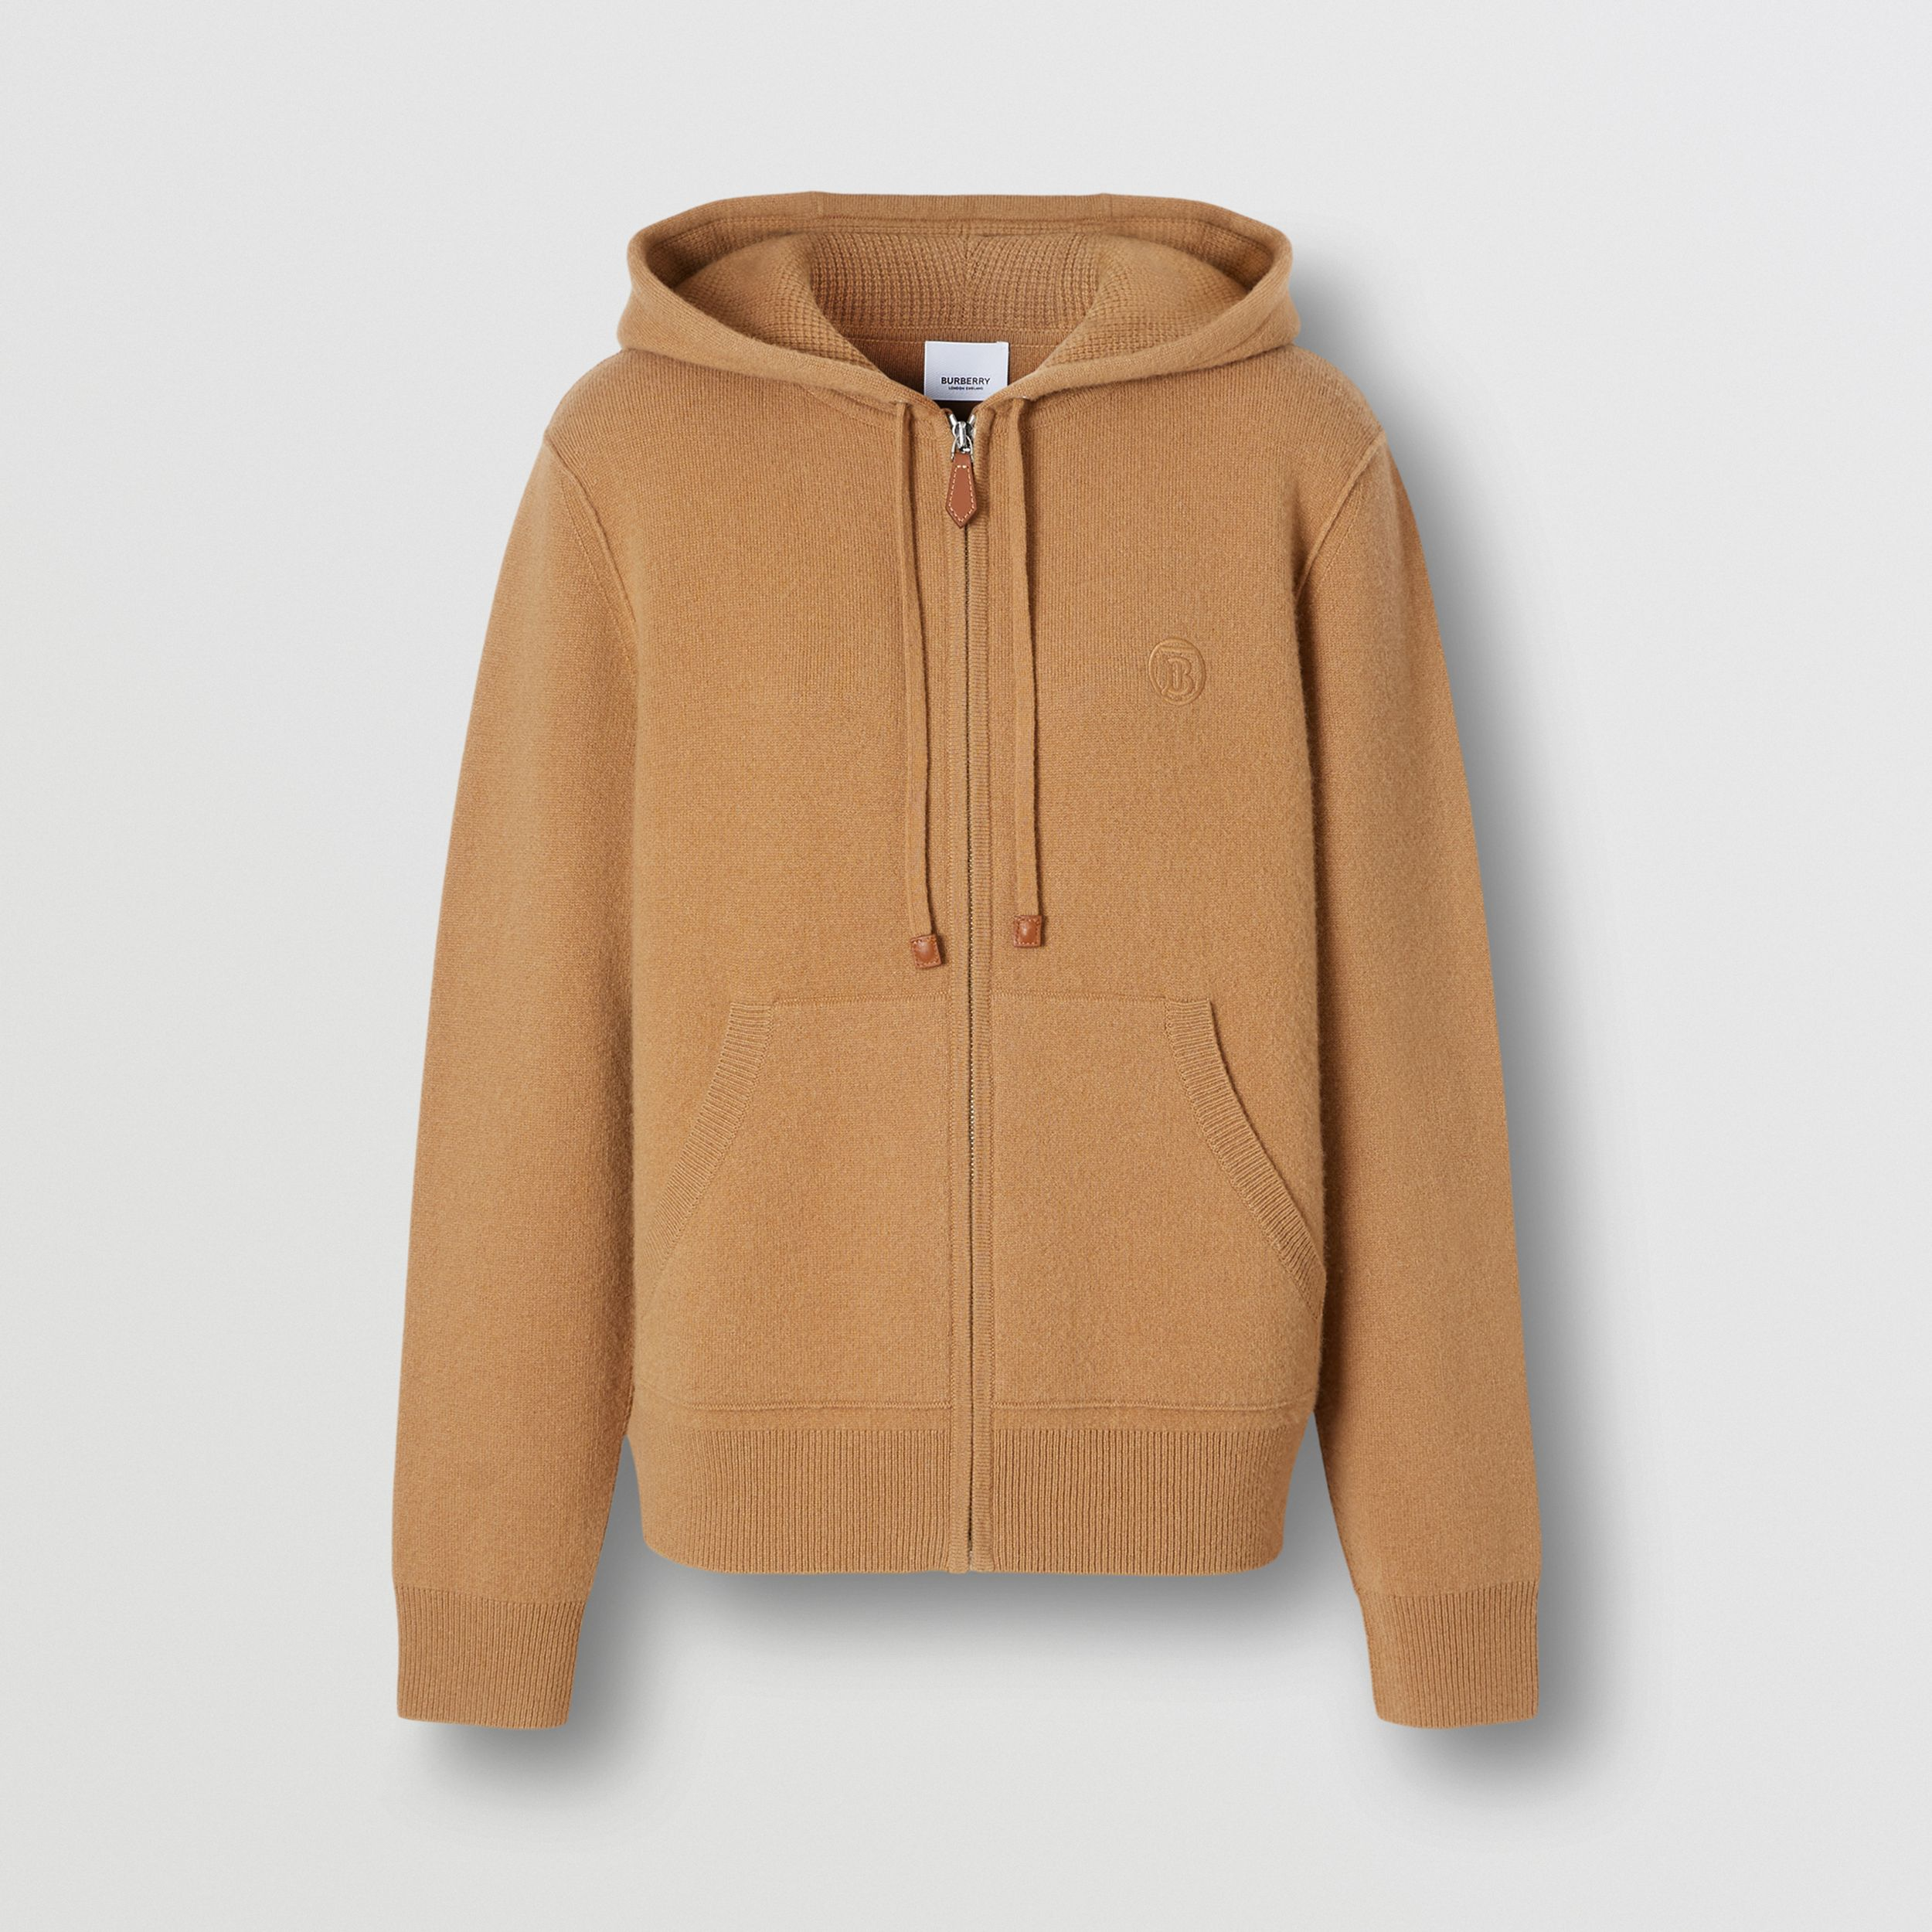 Monogram Motif Cashmere Blend Hooded Top in Camel - Women | Burberry - 4